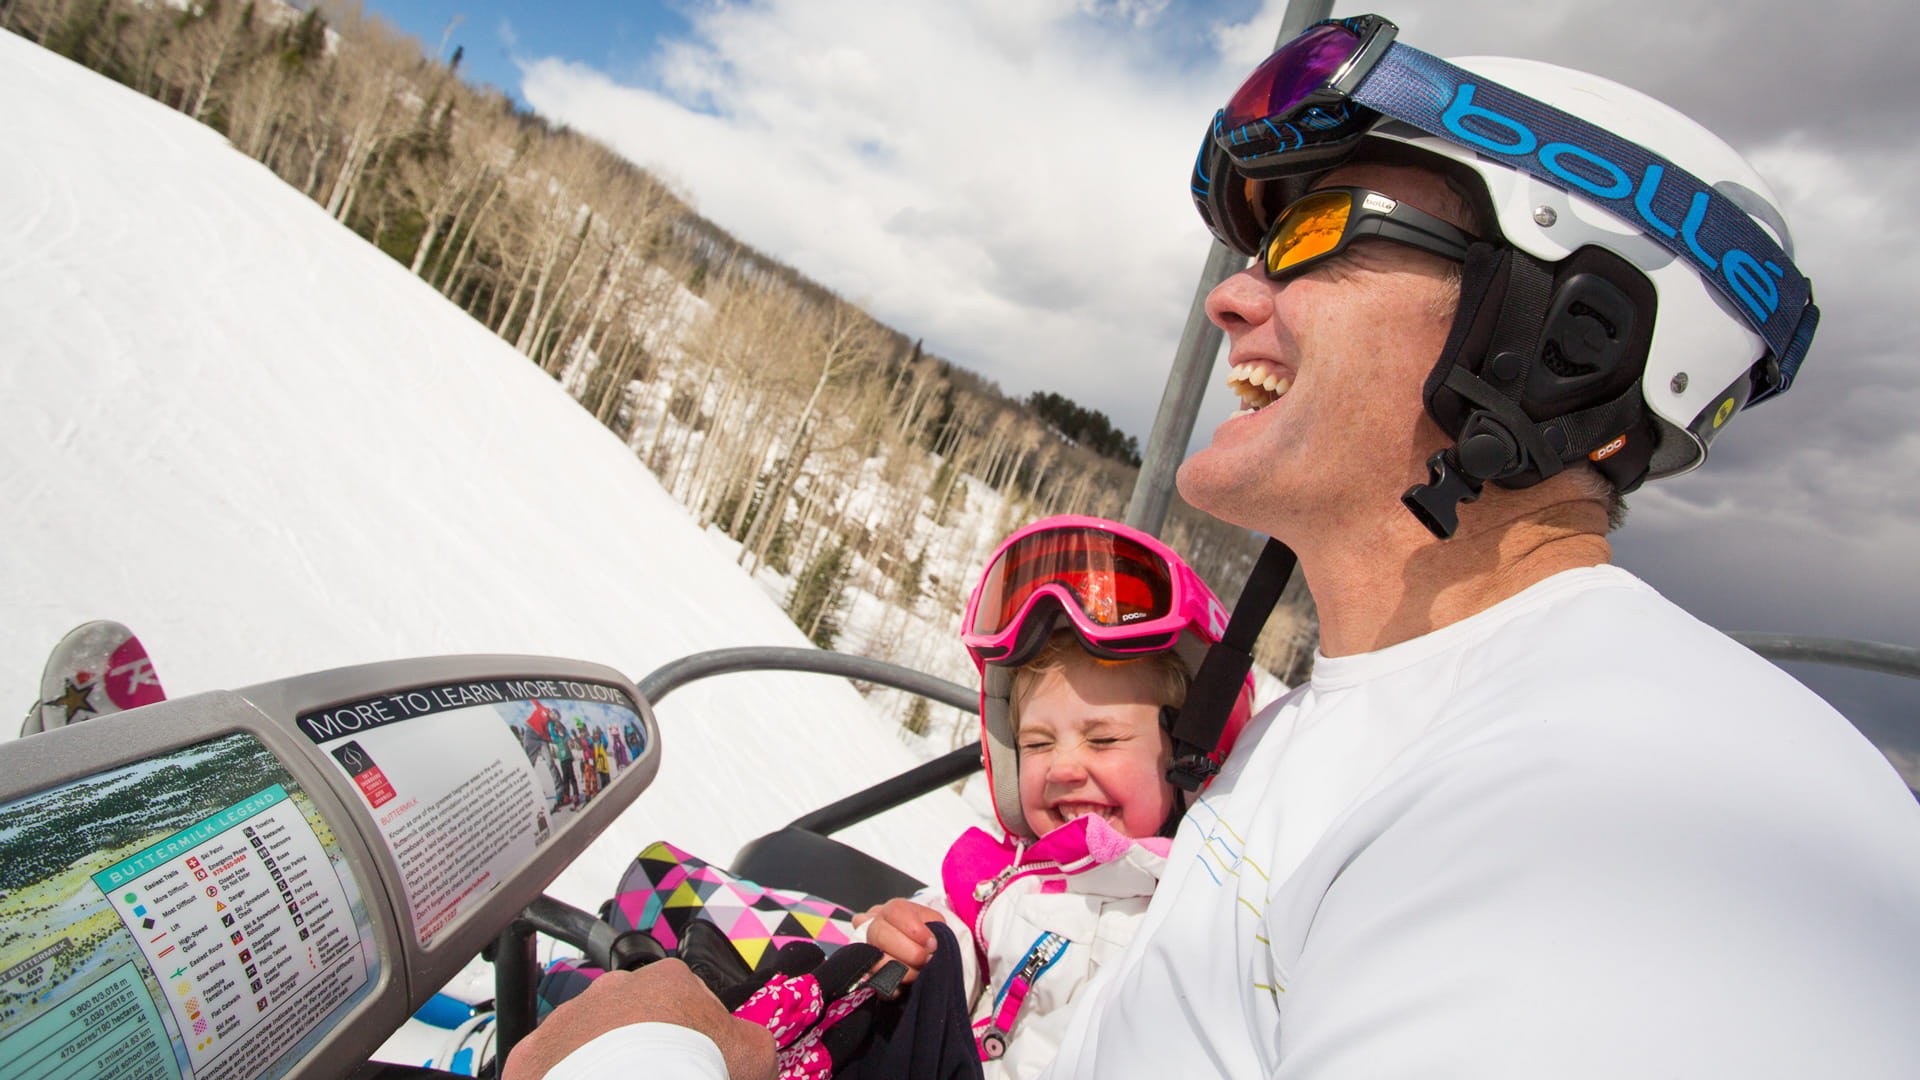 Happy Skiers on Chairlift in Aspen